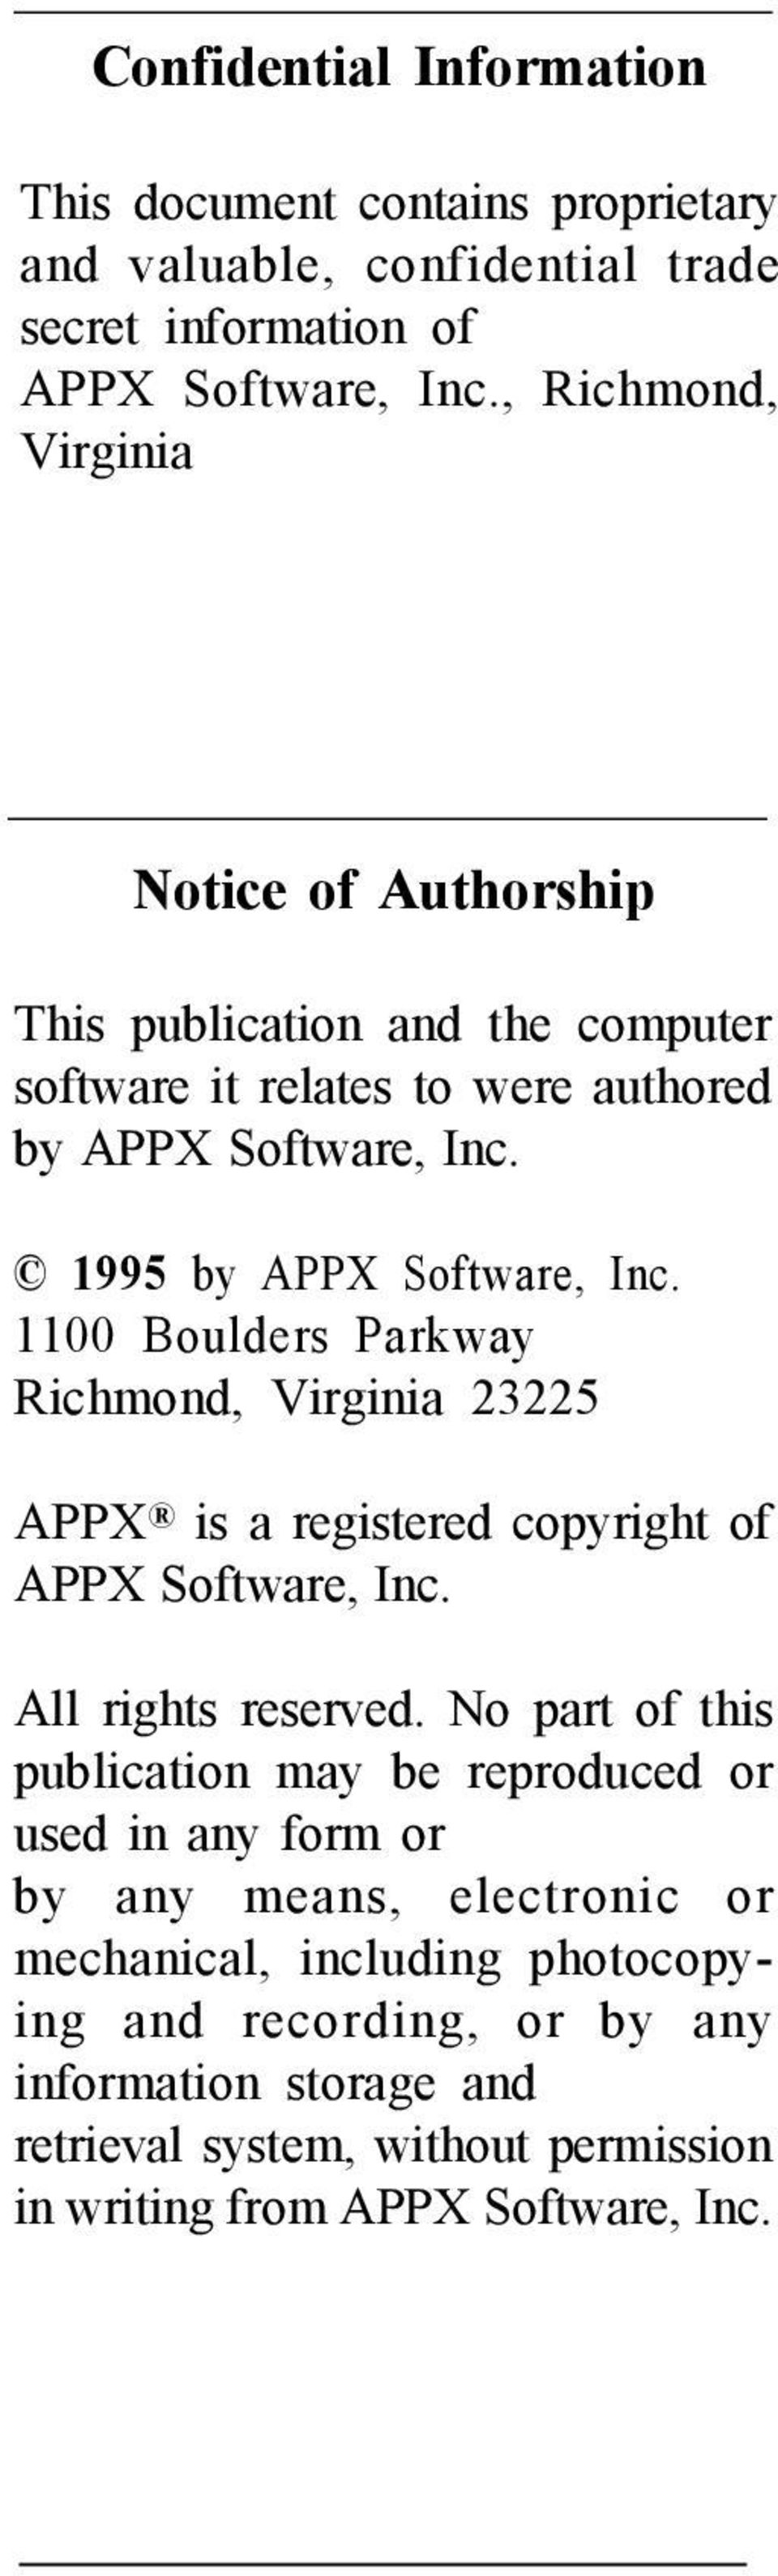 1100 Boulders Parkway Richmond, Virginia 23225 APPX is a registered copyright of APPX Software, Inc. All rights reserved.